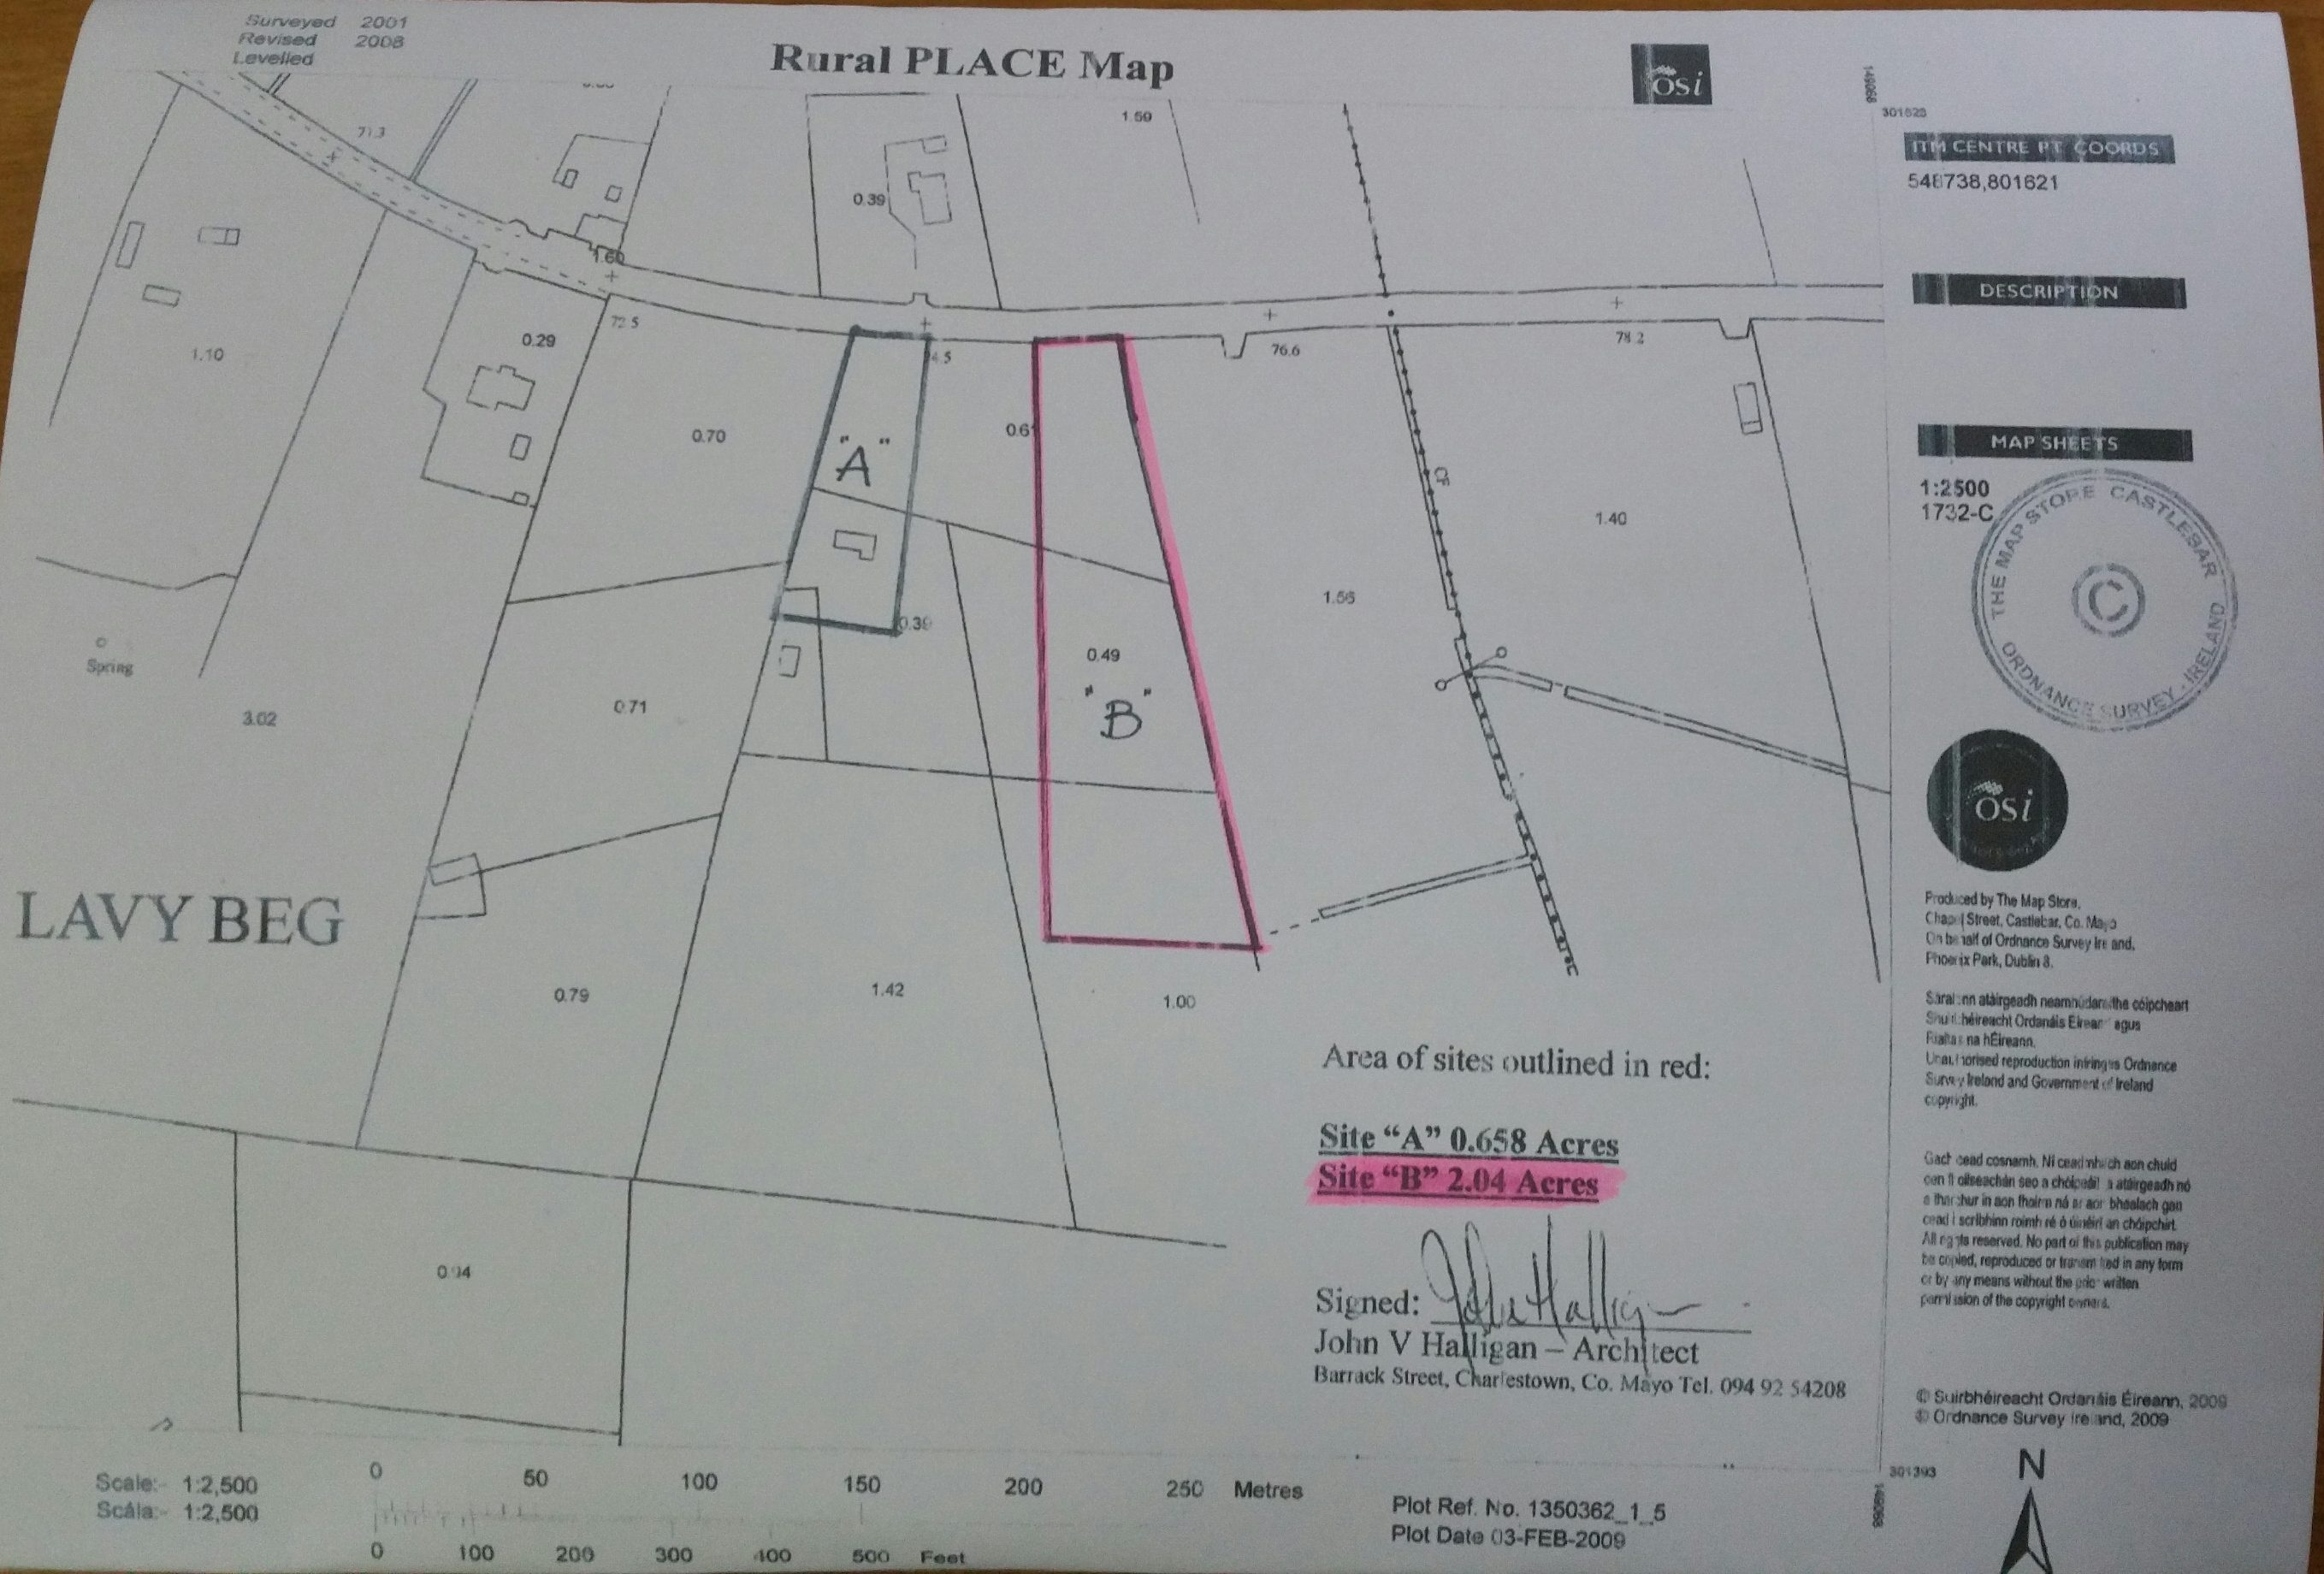 2.04 Acres Site at Laveybeg, Charlestown